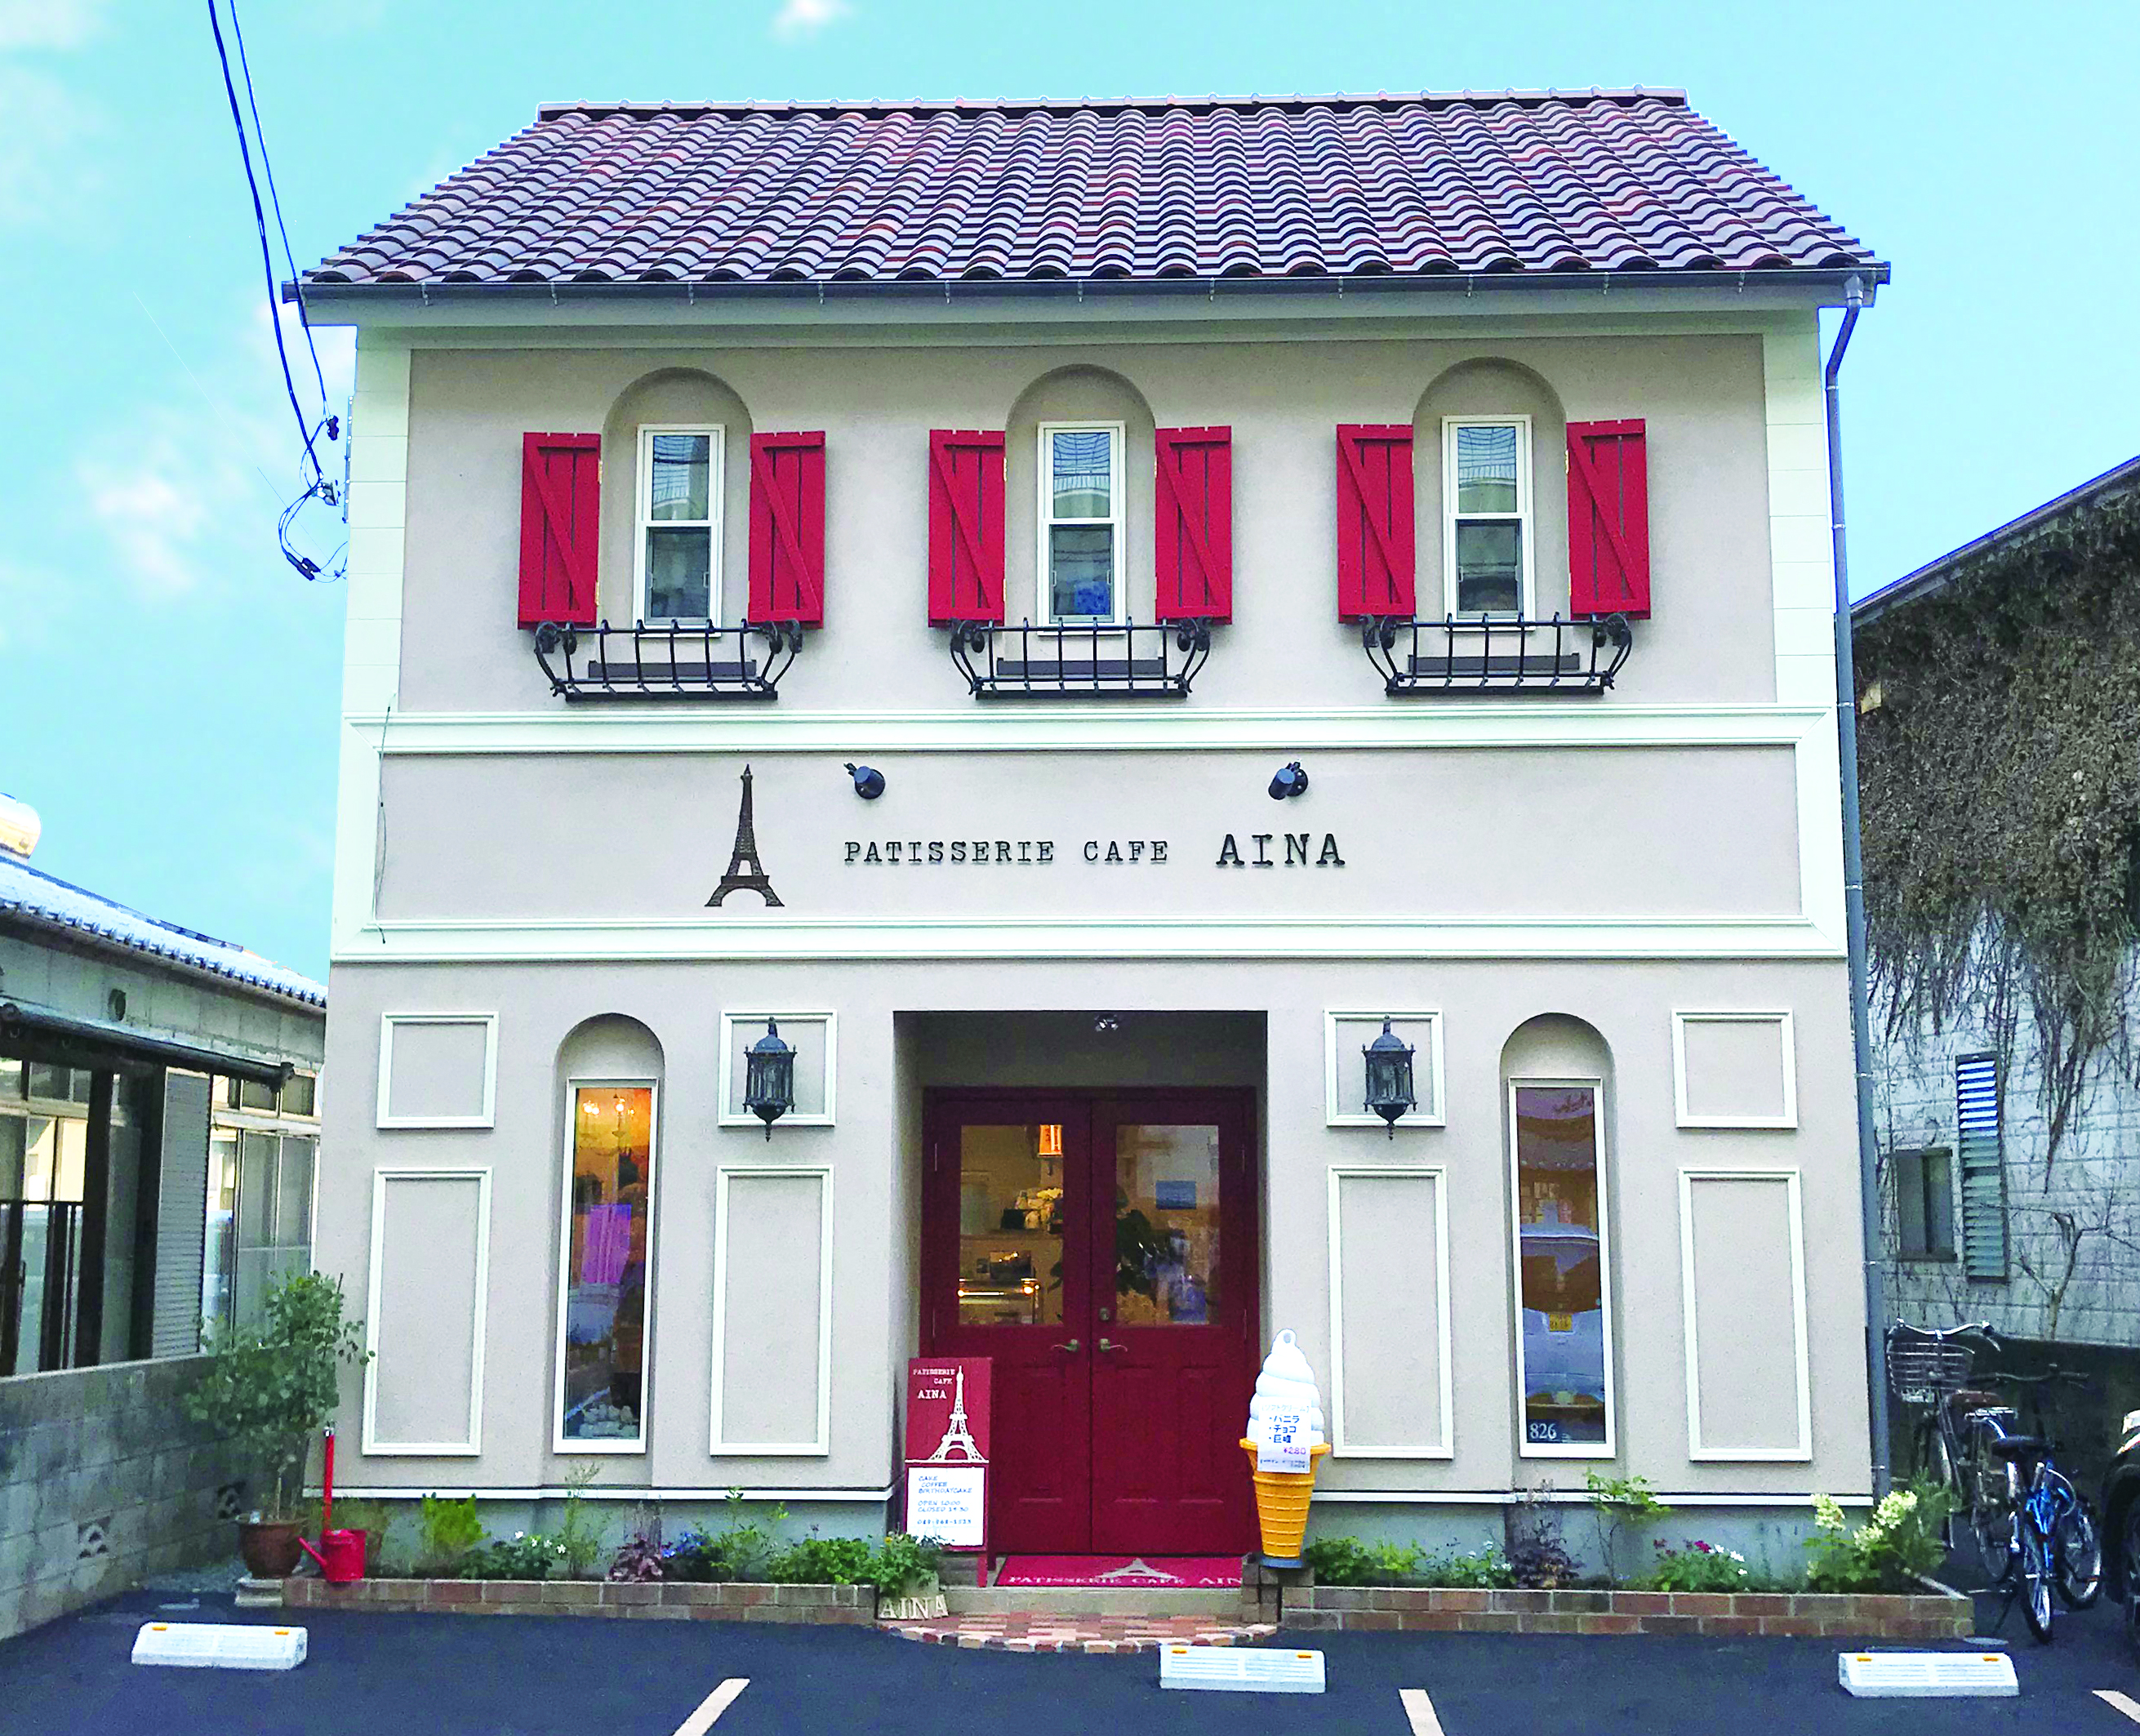 PATISSERIE CAFE AINA